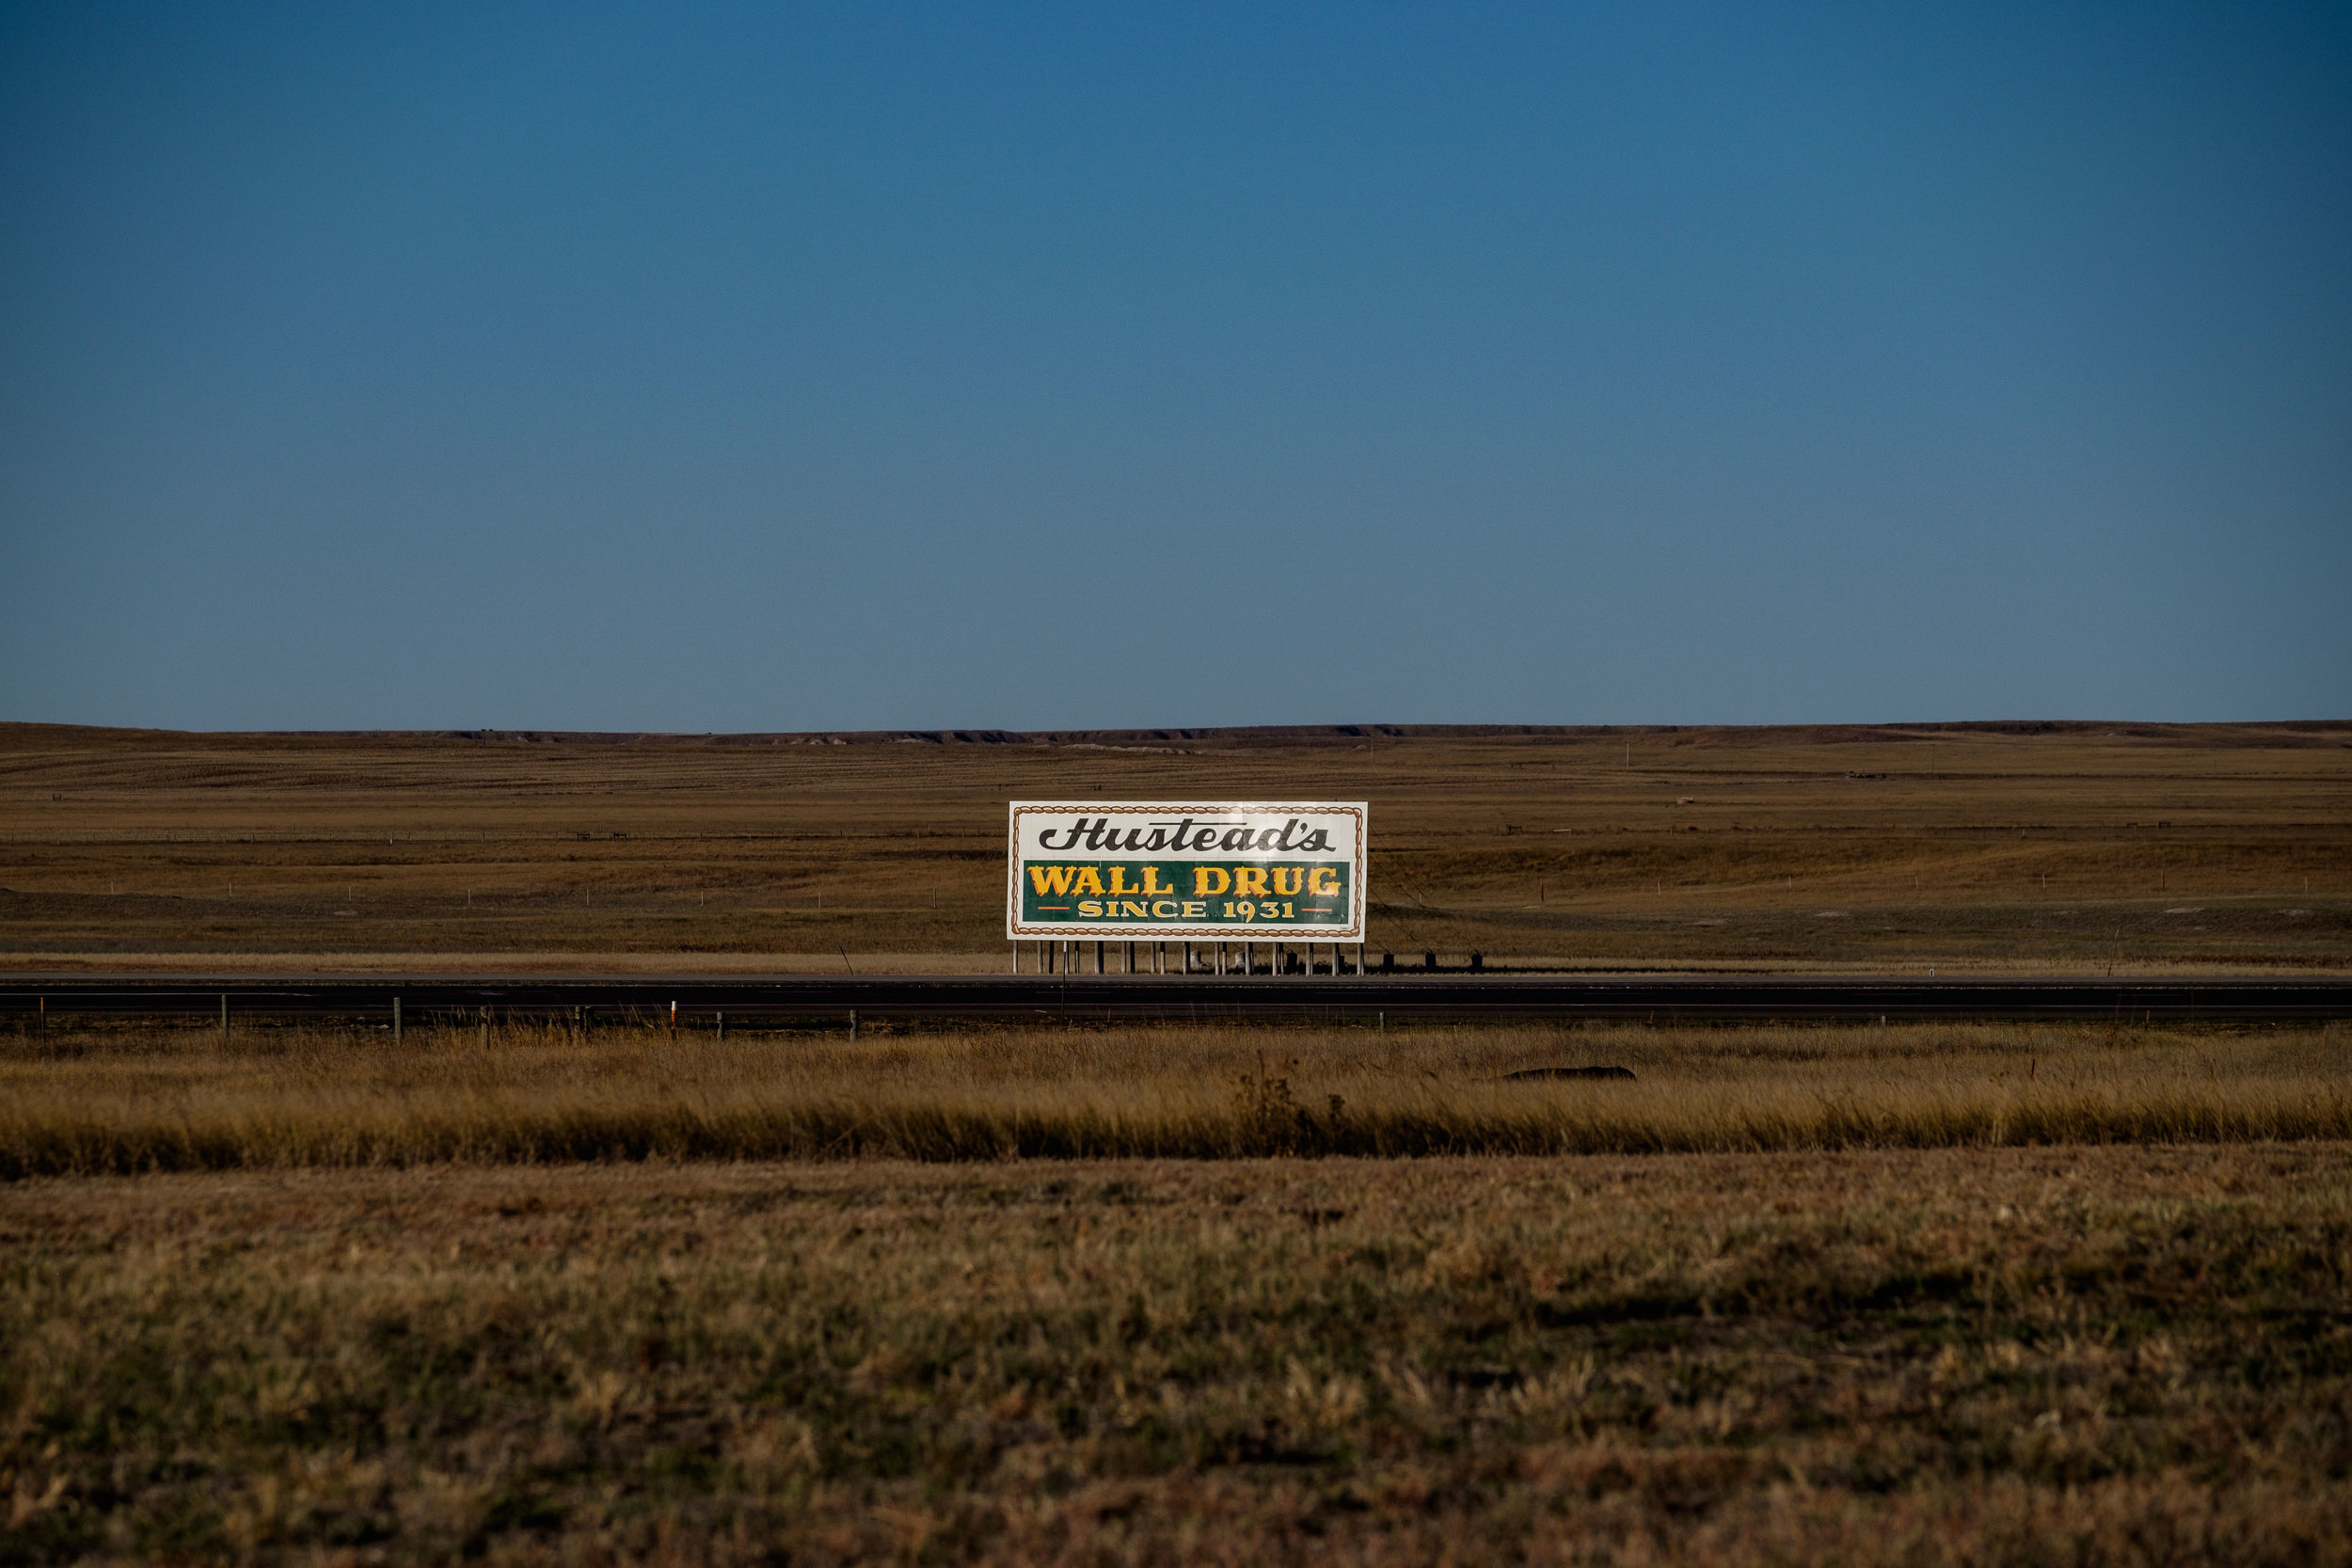 Wall Drug signs in South Dakota.